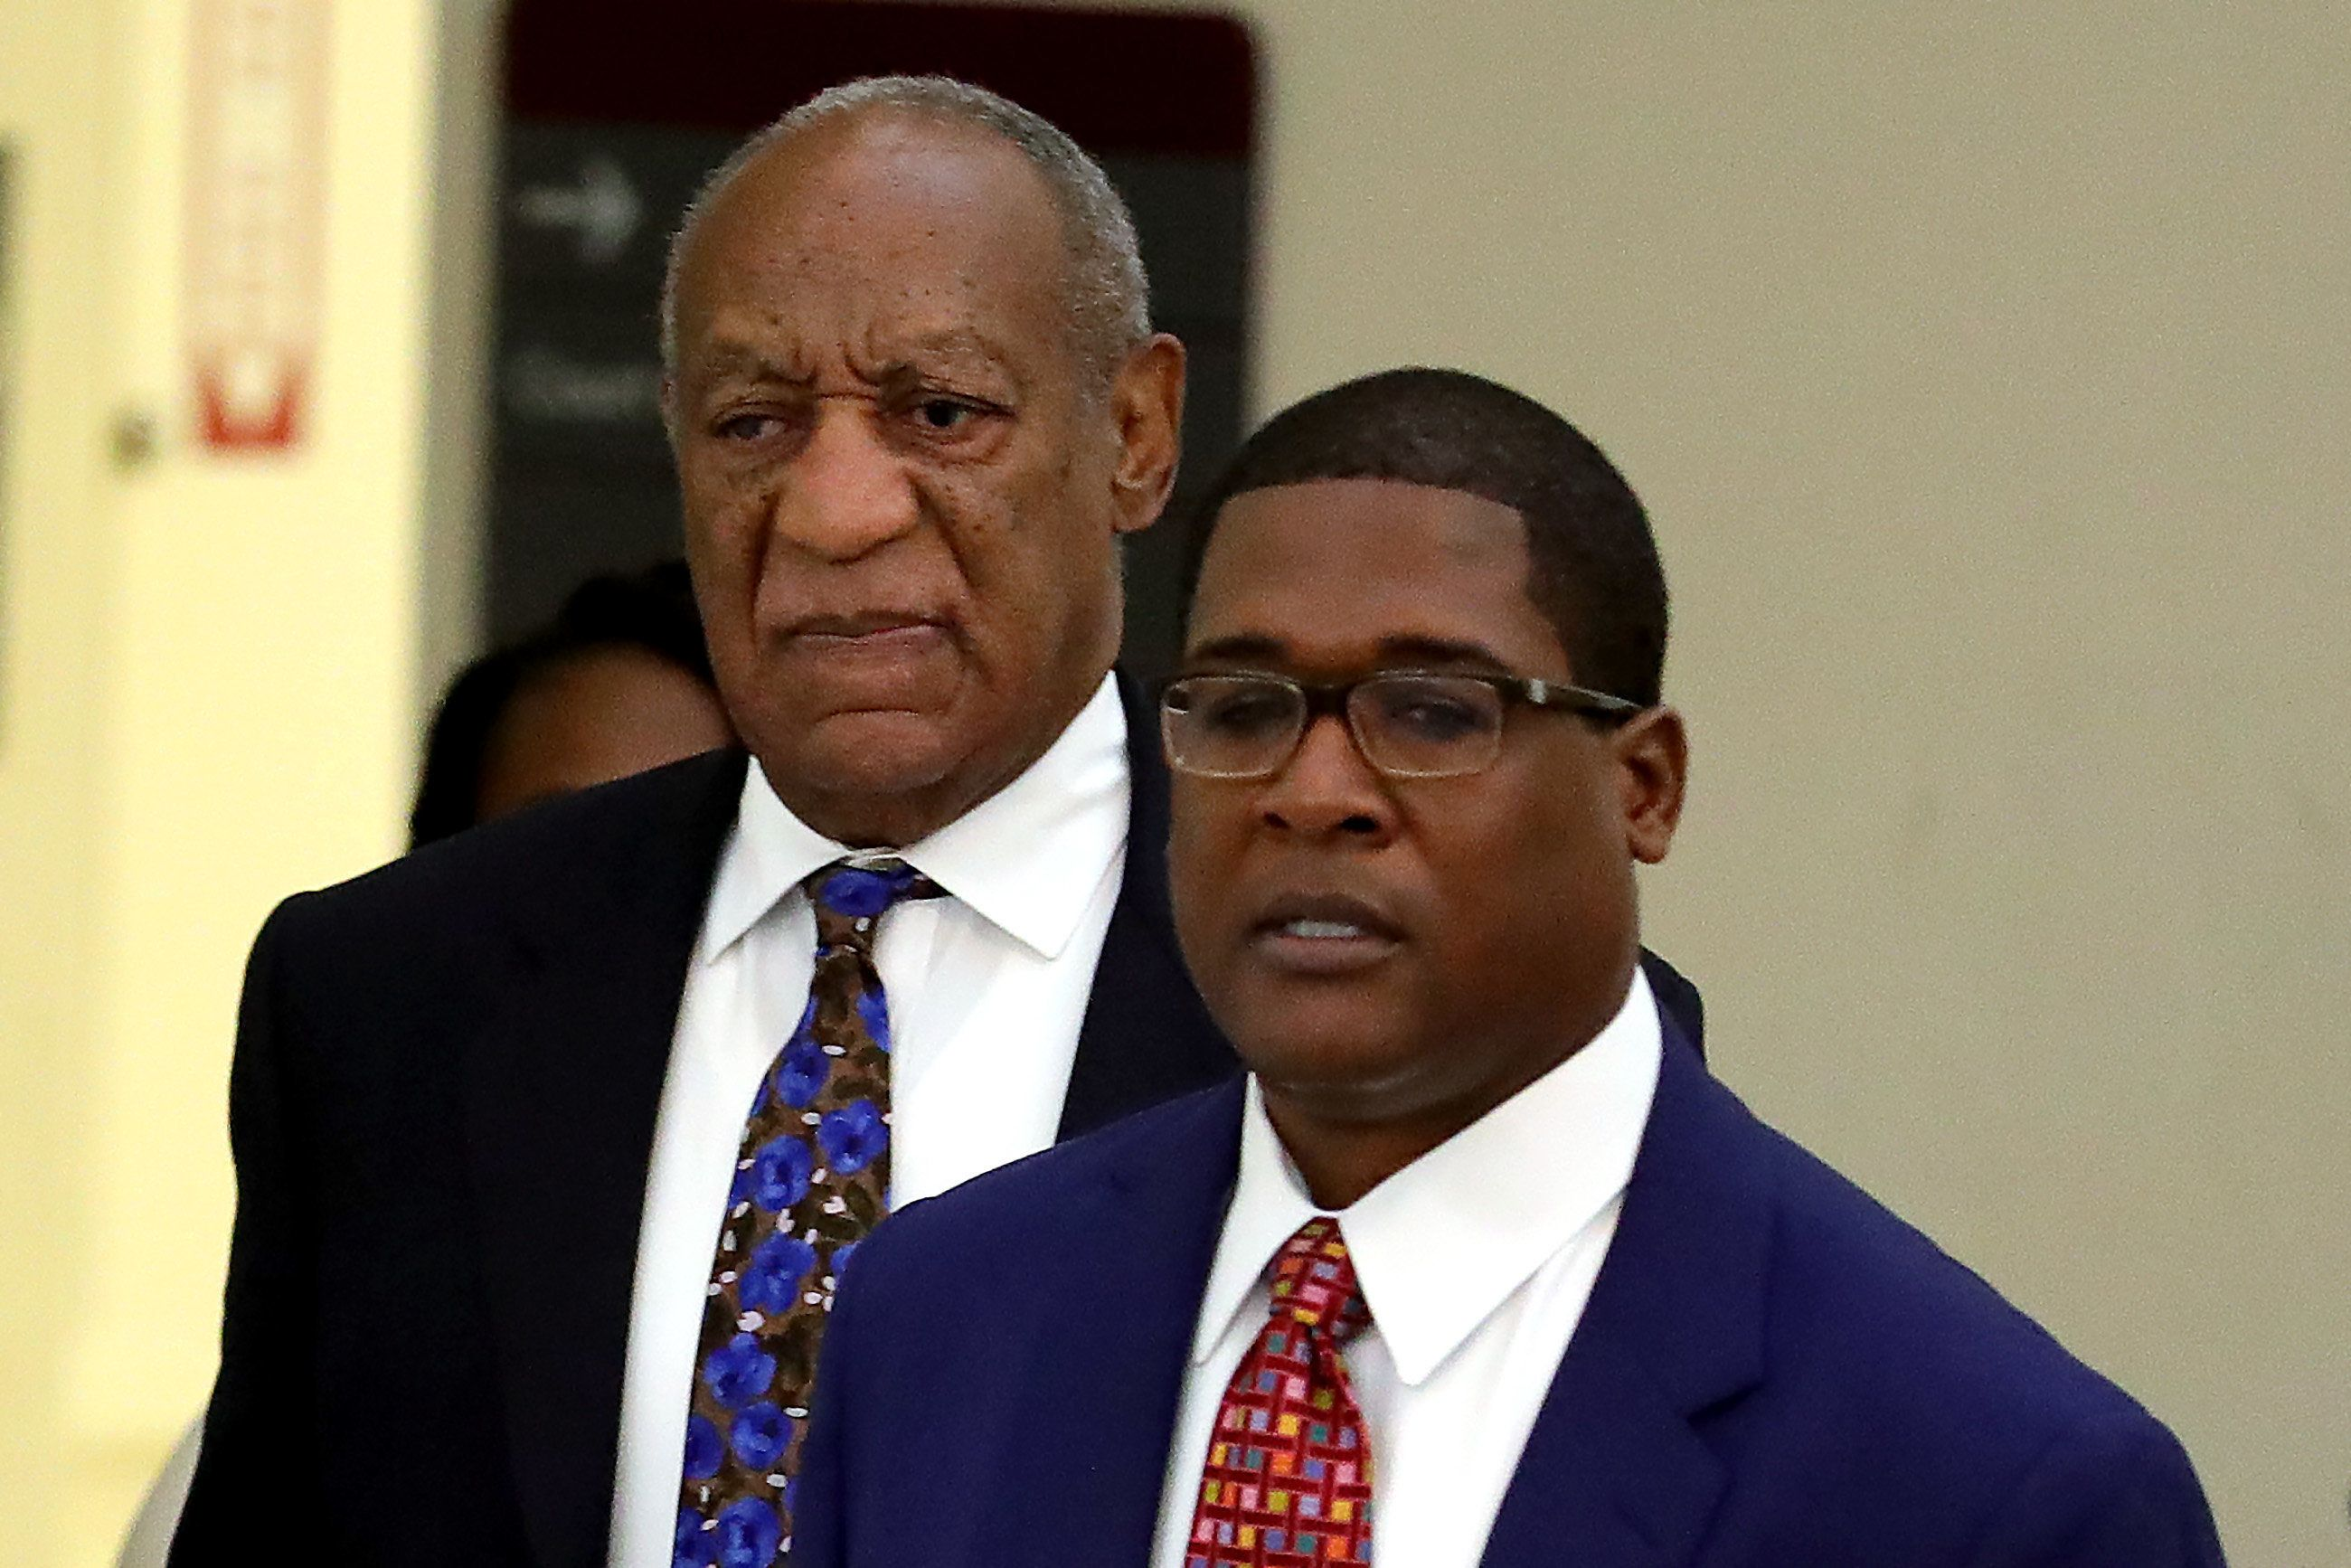 Bill Cosby's Publicist: 'They Persecuted Jesus And Look What